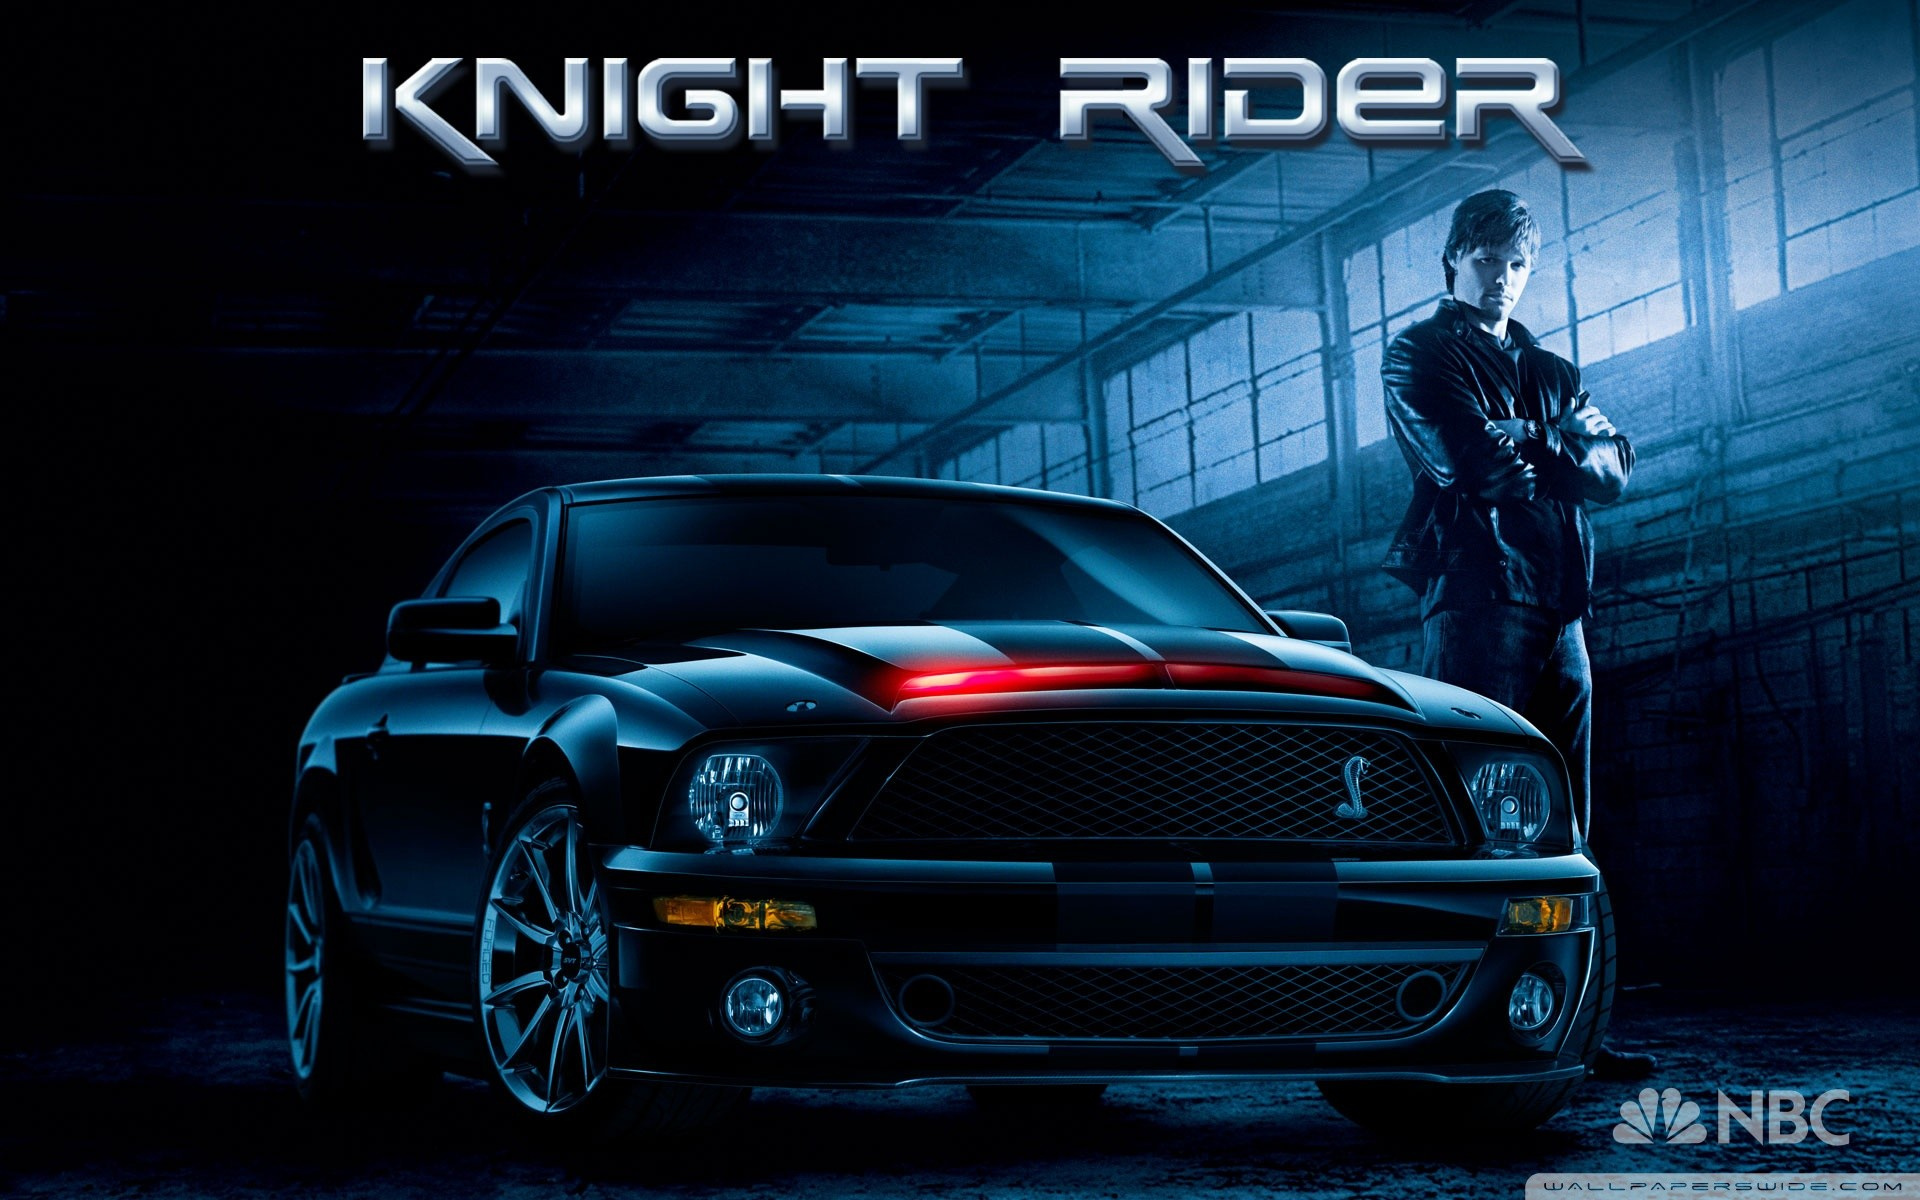 knight rider 2 game free download pc full version